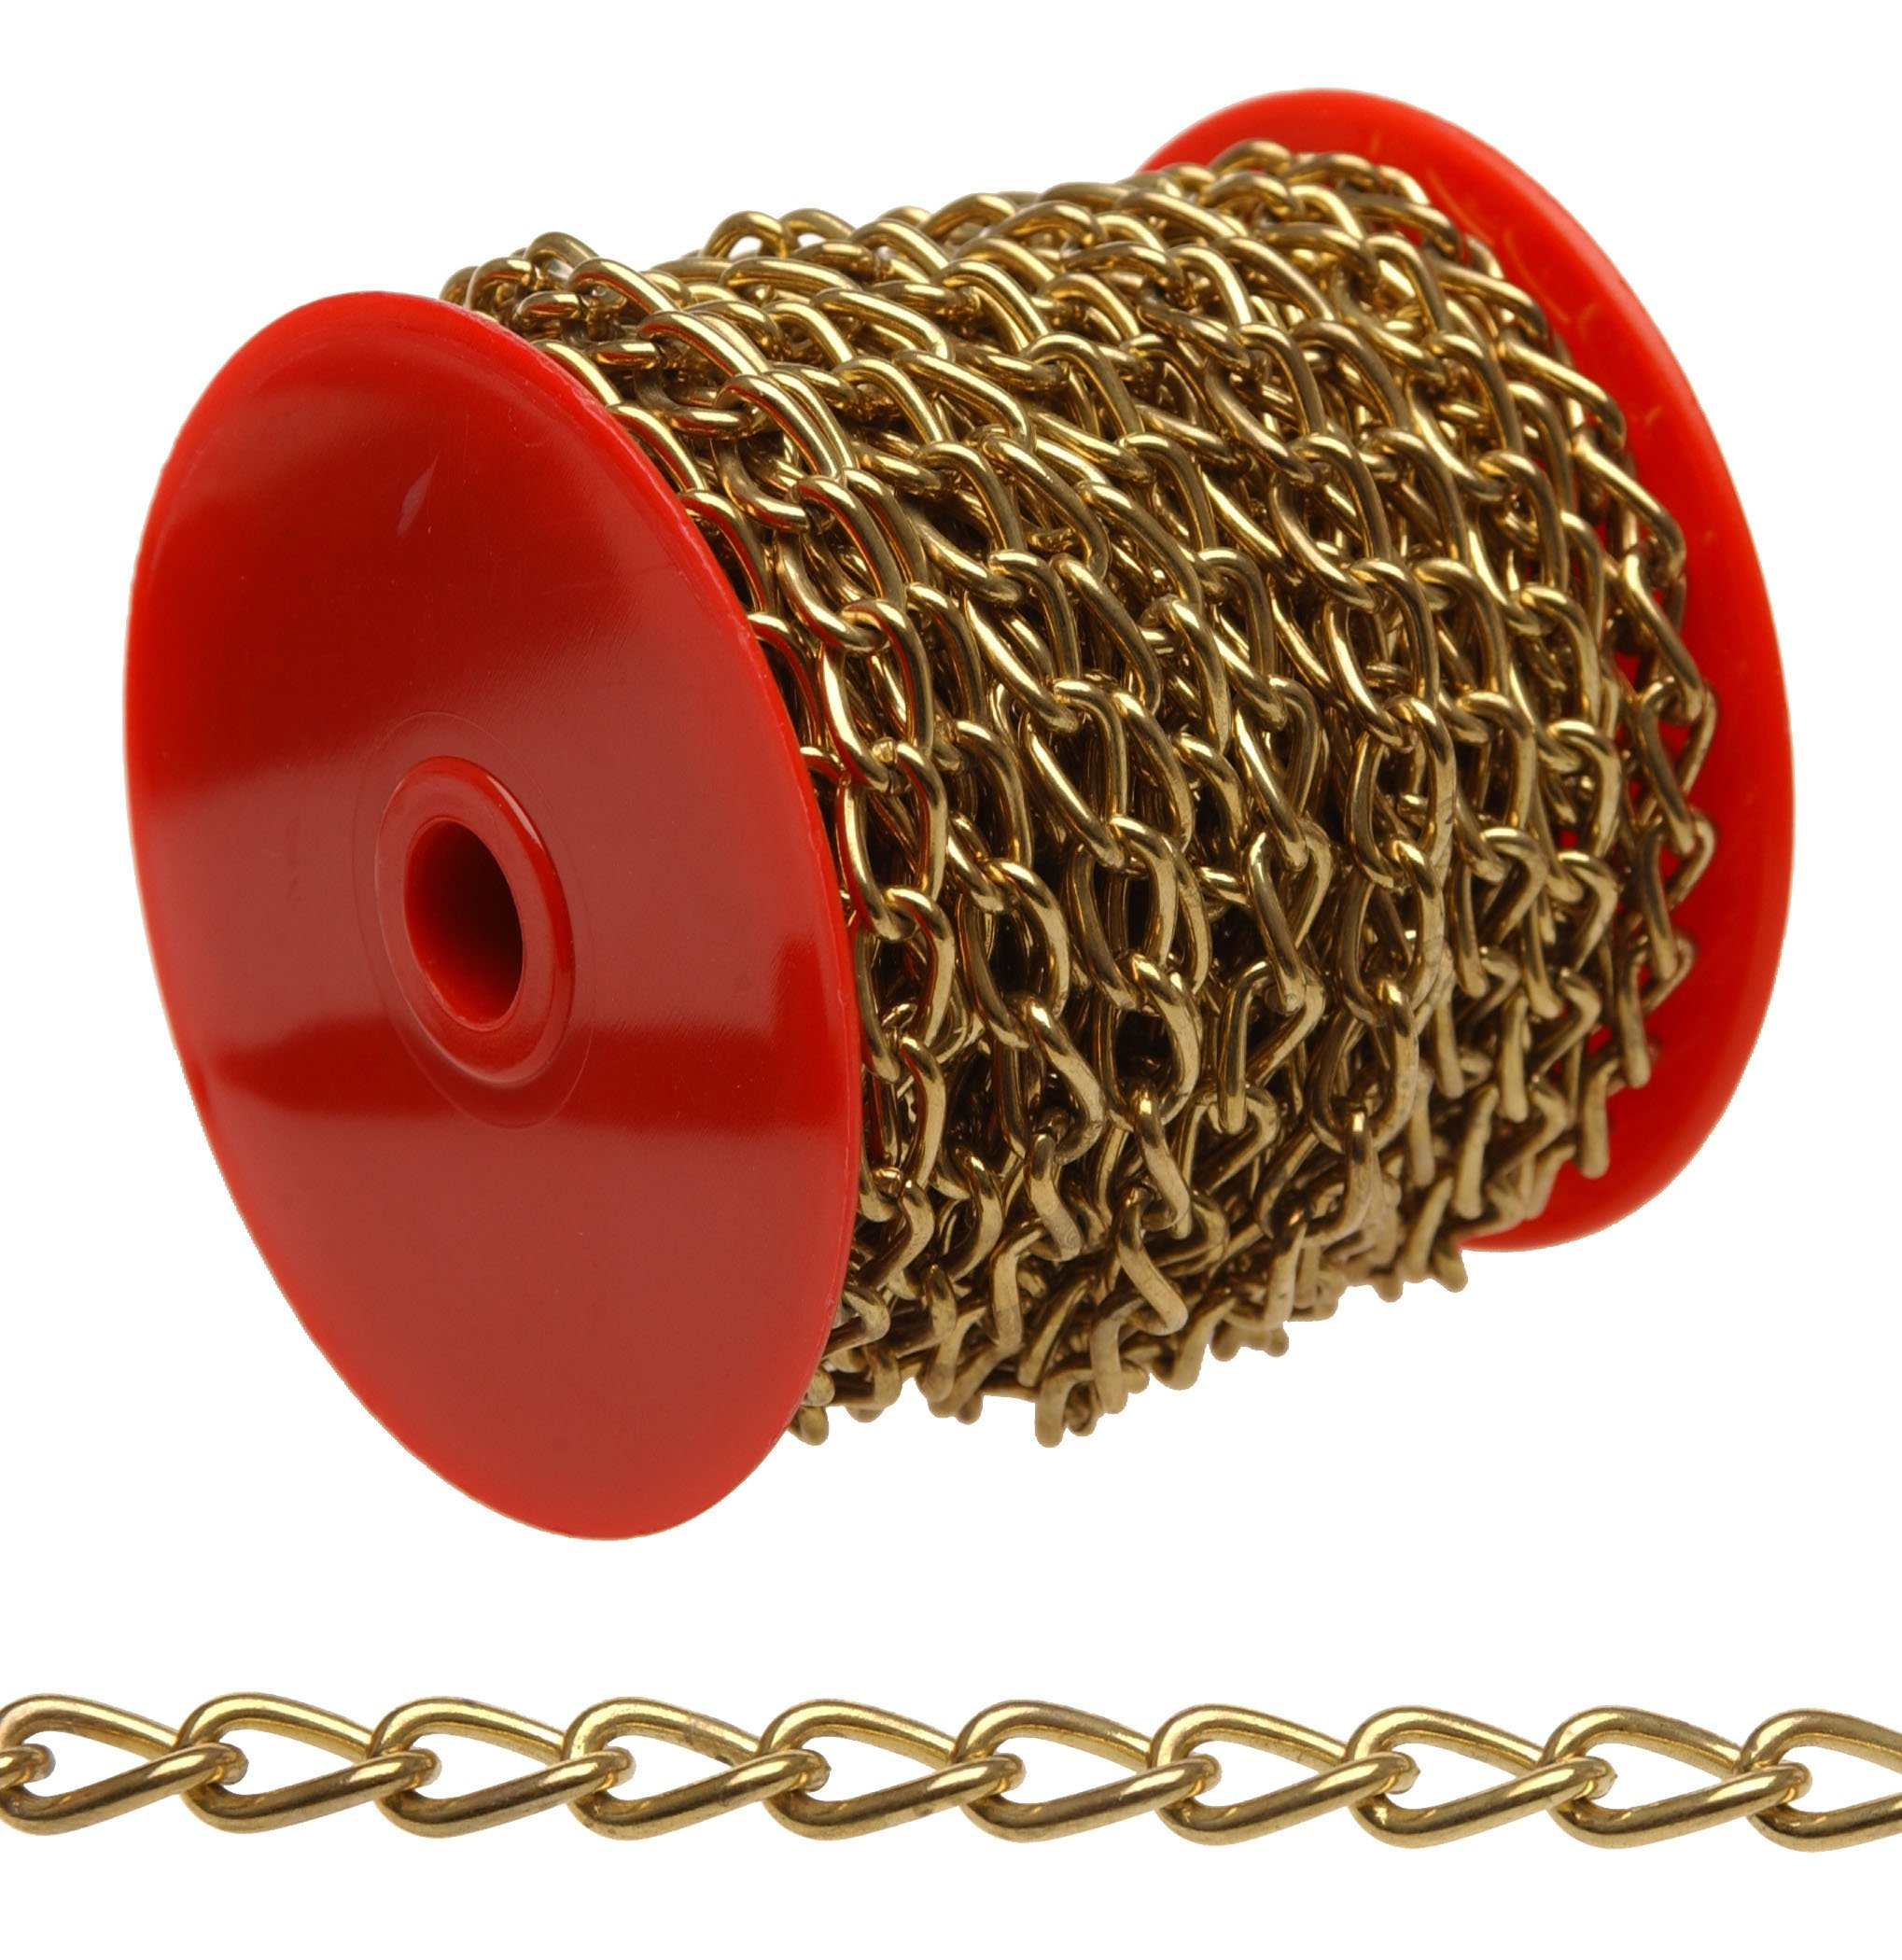 Campbell 0719017 Hobby and Craft Twist Chain, Brass Plated, #90 Trade, 0.056'' Diameter, 5 lbs Load Capacity, 82 Feet Mini Reel by Apex Tool Group